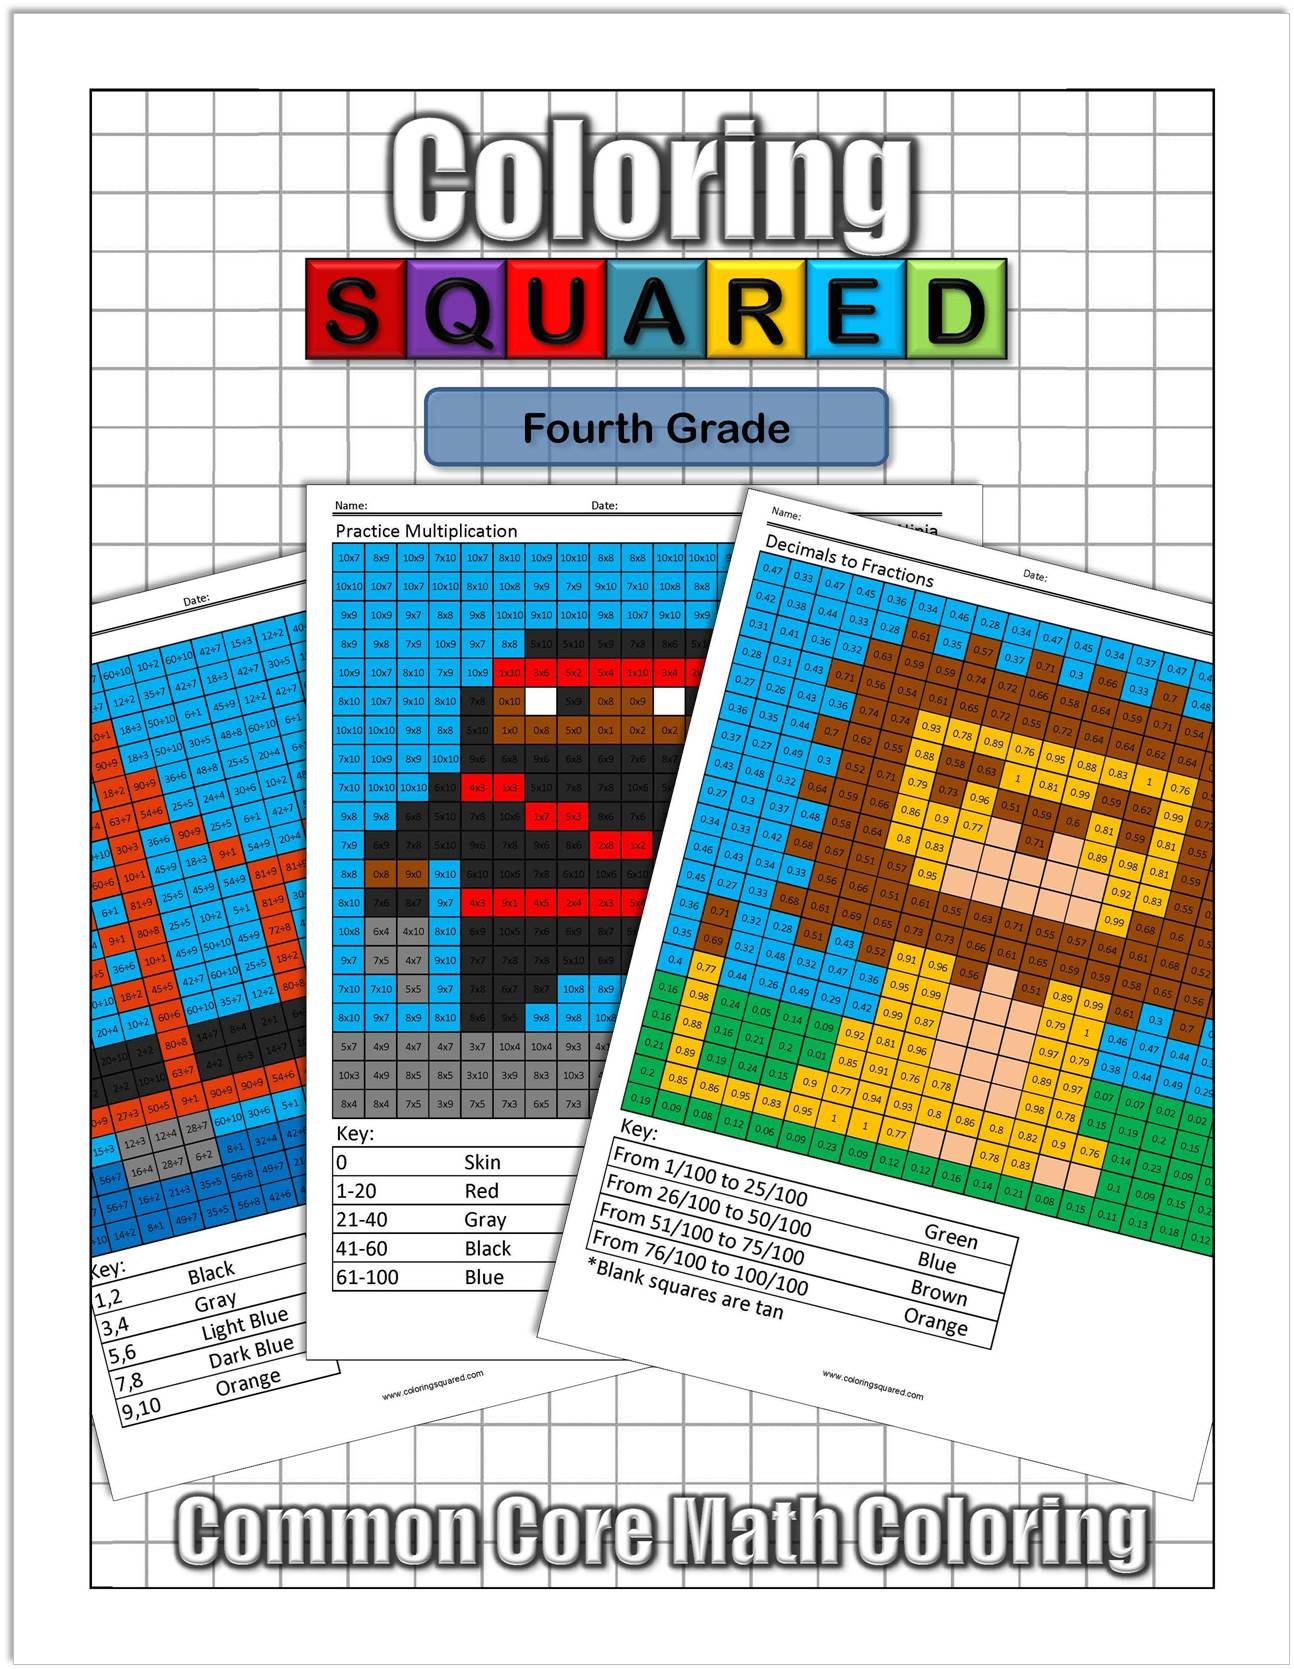 hight resolution of 4th Grade Math - Coloring Squared